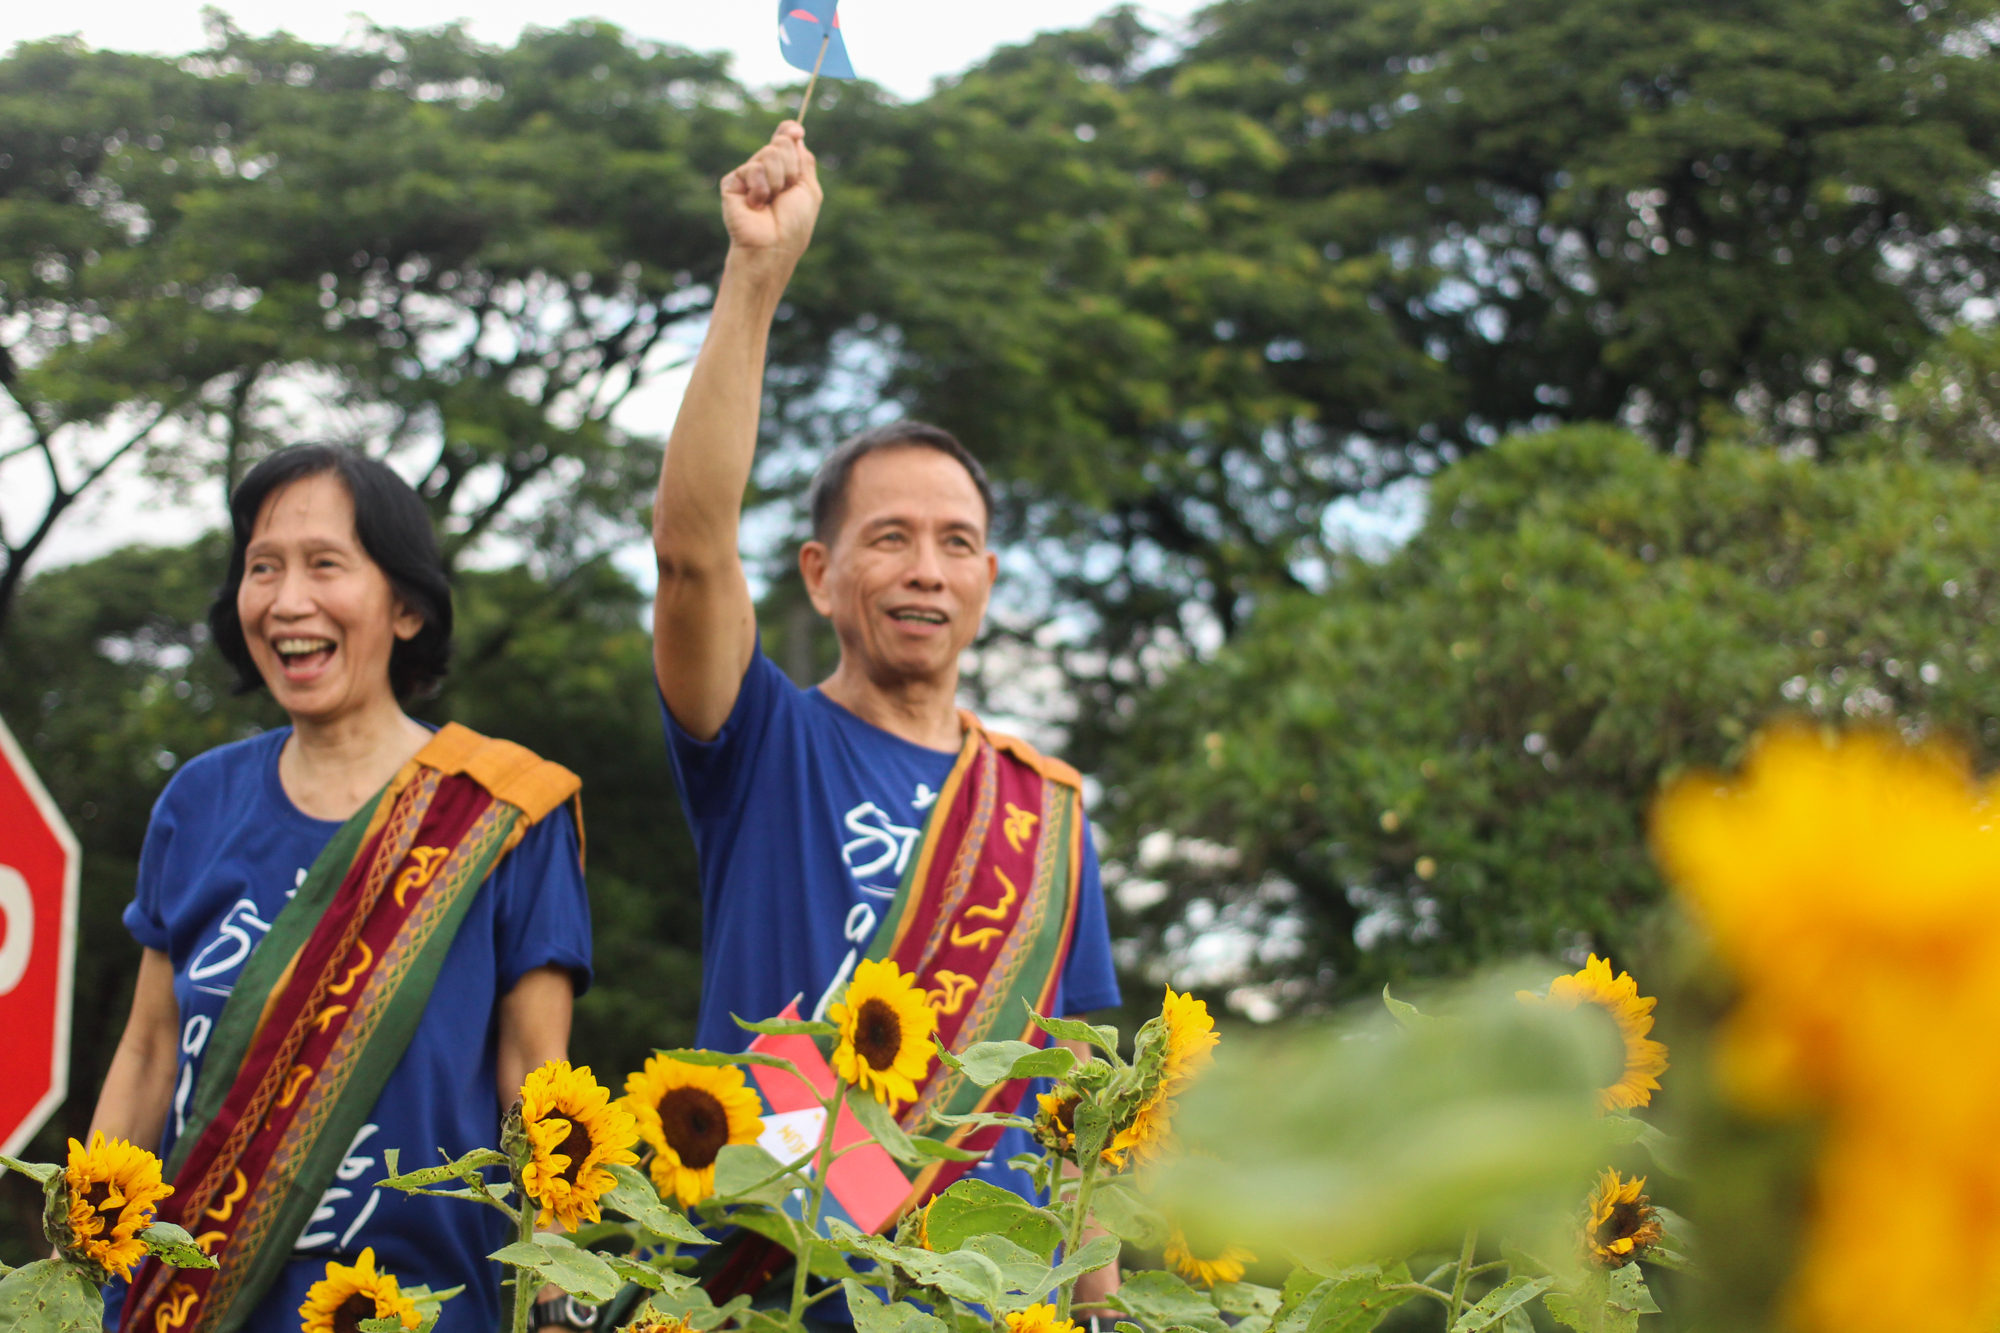 NDFP consultants Wilma and Benito Tiamzon walk along the sunflower path towards the Diliman Commune marker, commemorating the historic mobilization they were involved in during the Marcos regime. The former political detainees are preparing for the next round of the peace negotiations between the GPH and NDFP. (Photo by Gino Estella/Bulatlat)